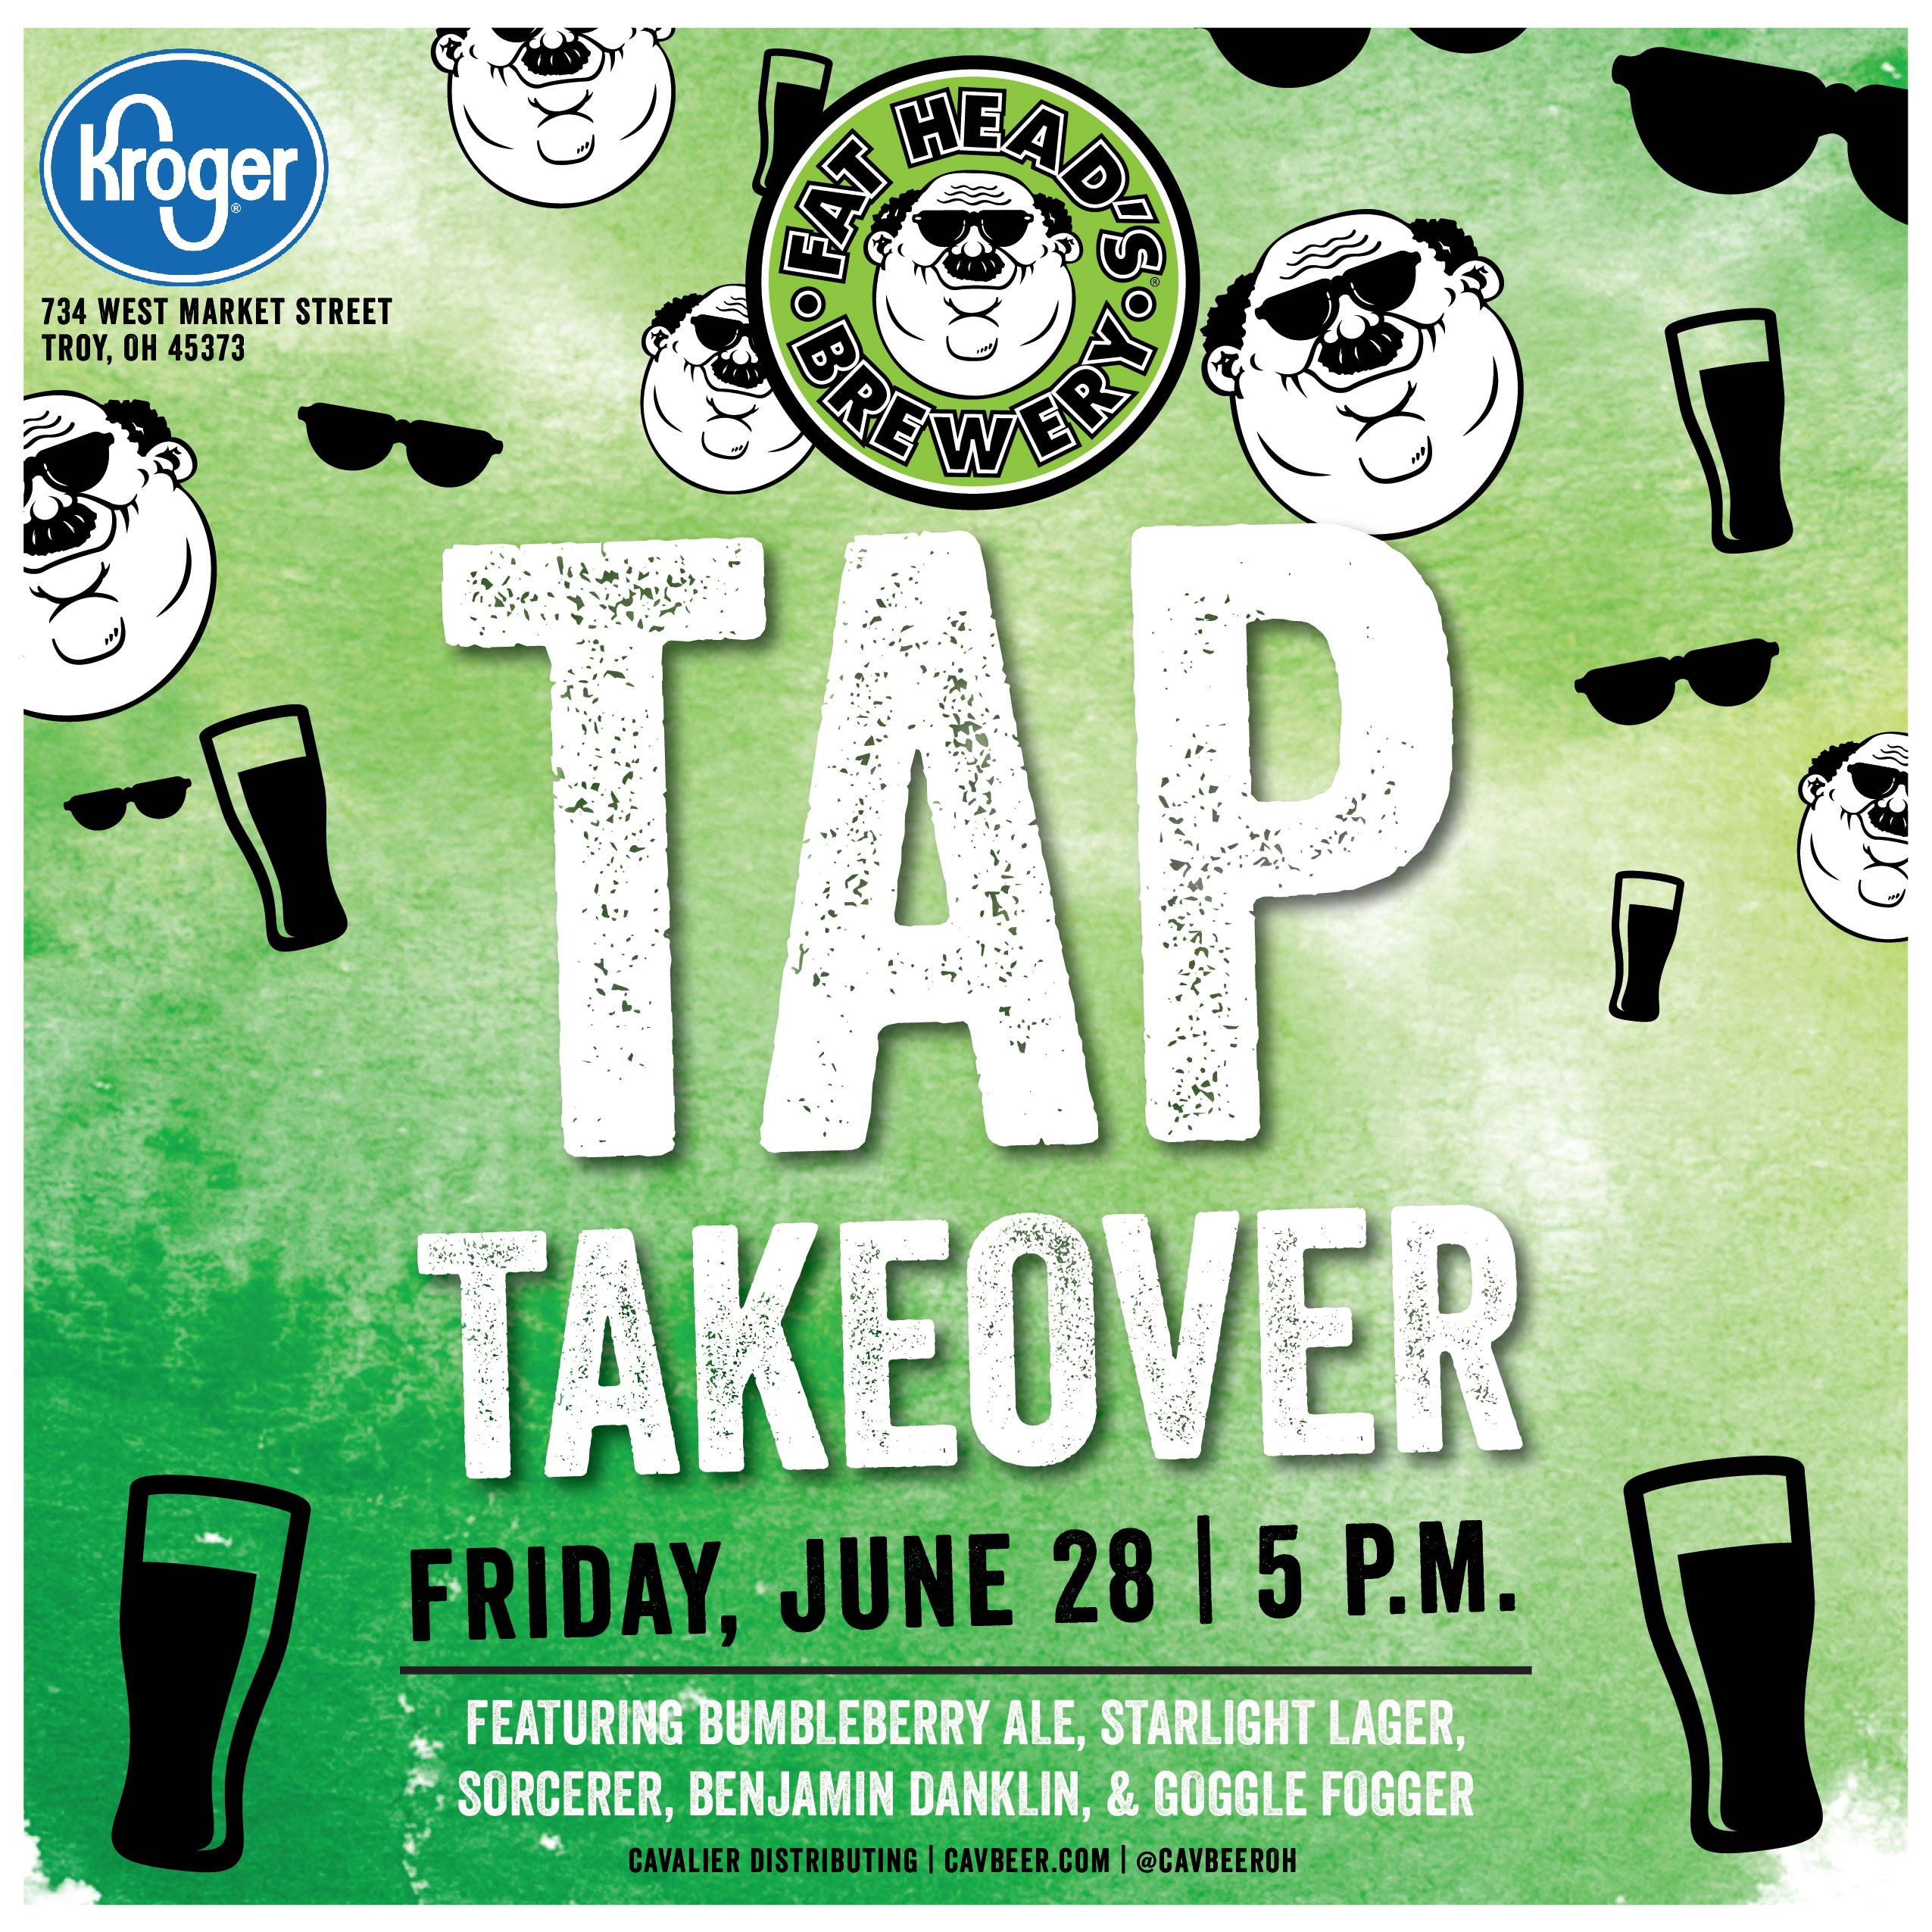 Fat Head's Tap Takeover @ Kroger (Troy,OH)